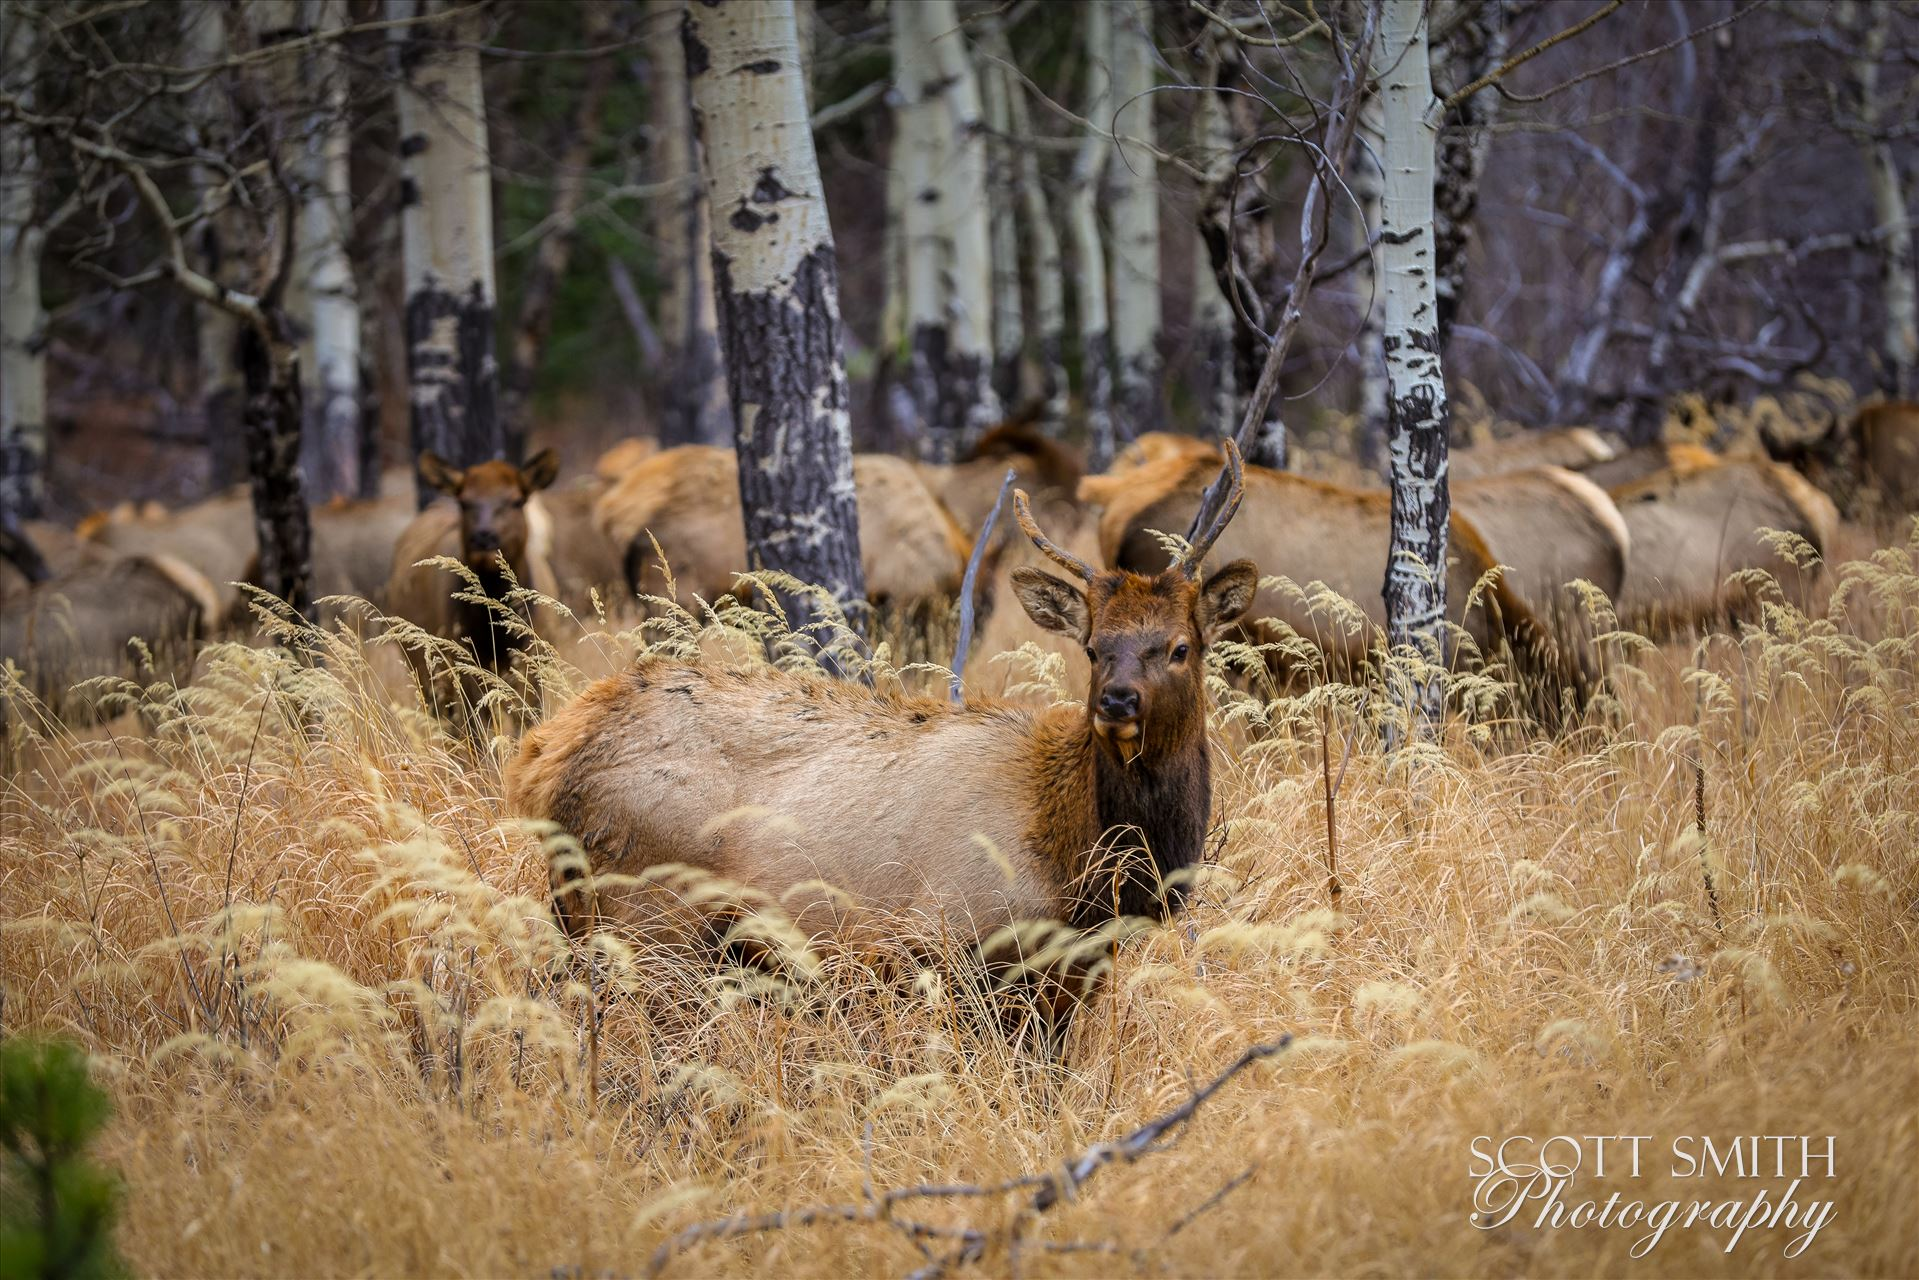 Sunday Elk No 01 - A heard of Elk near the entrance to Rocky Mountain National Park, Estes Park, Colorado. by D Scott Smith